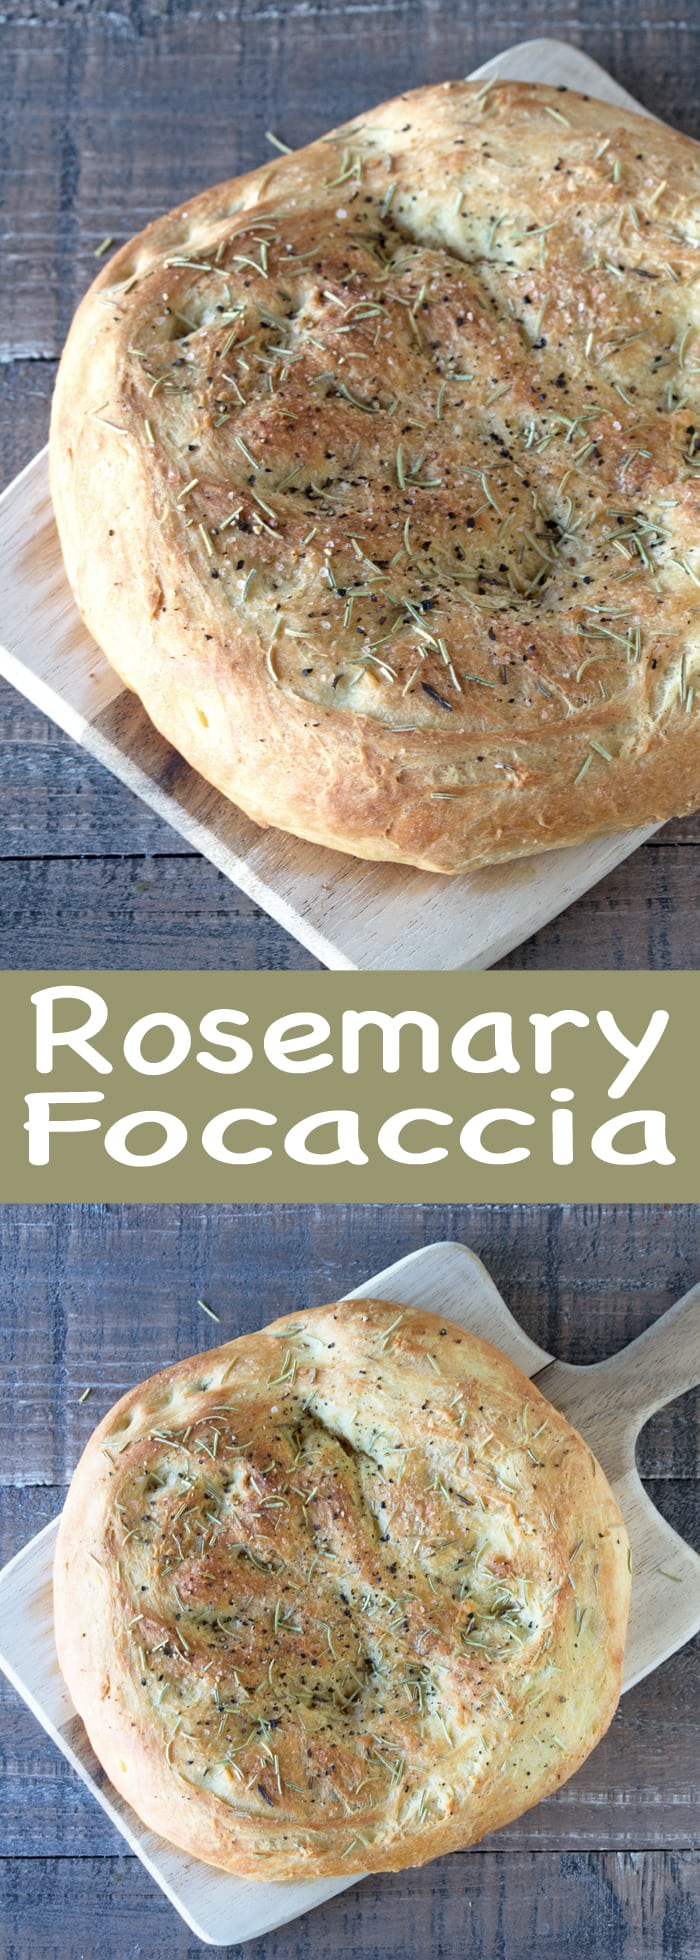 Easy Homemade Rosemary Focaccia Makes The Most Delicious Sandwiches And Is Heavenly Along Side A Bowl